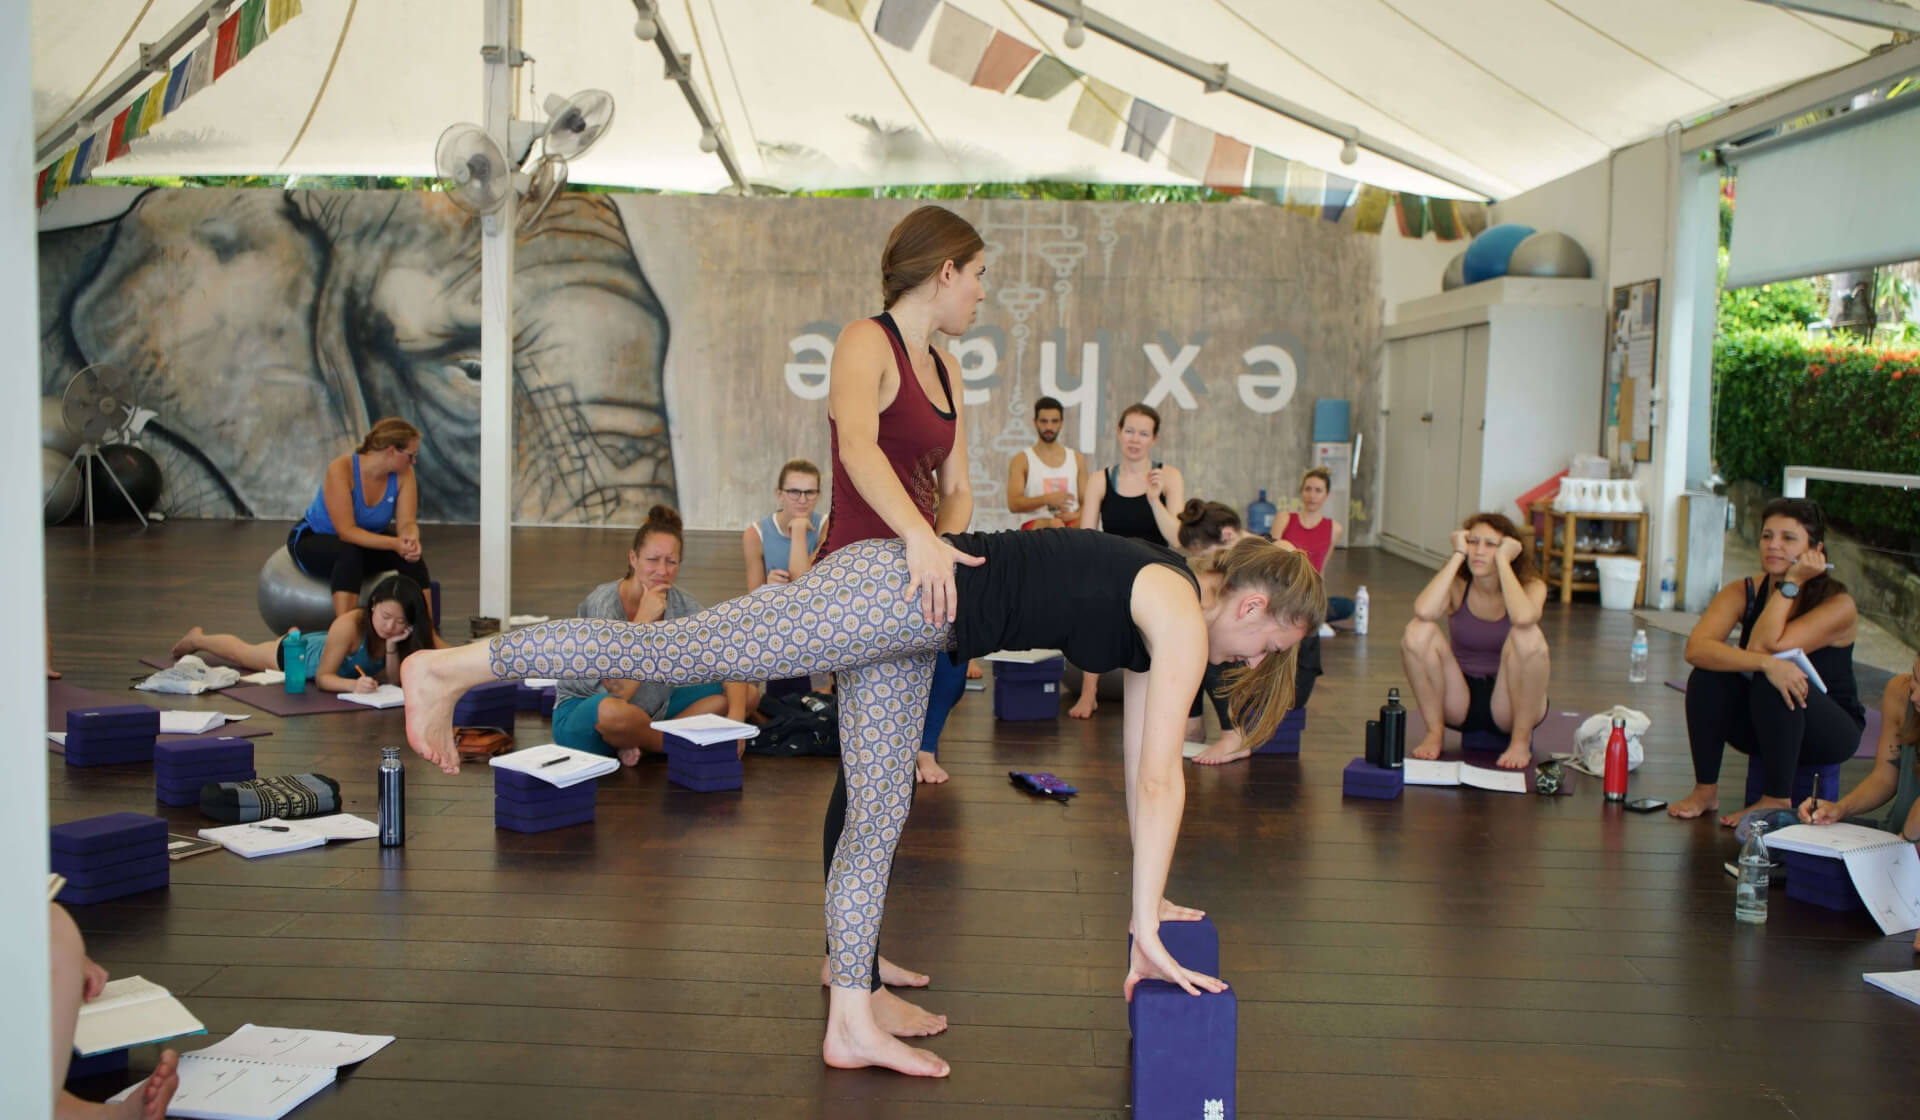 Yoga teacher trainer showing onlooking students how to offer a hands-on assist in Warrior III in an open-air yoga shalaa